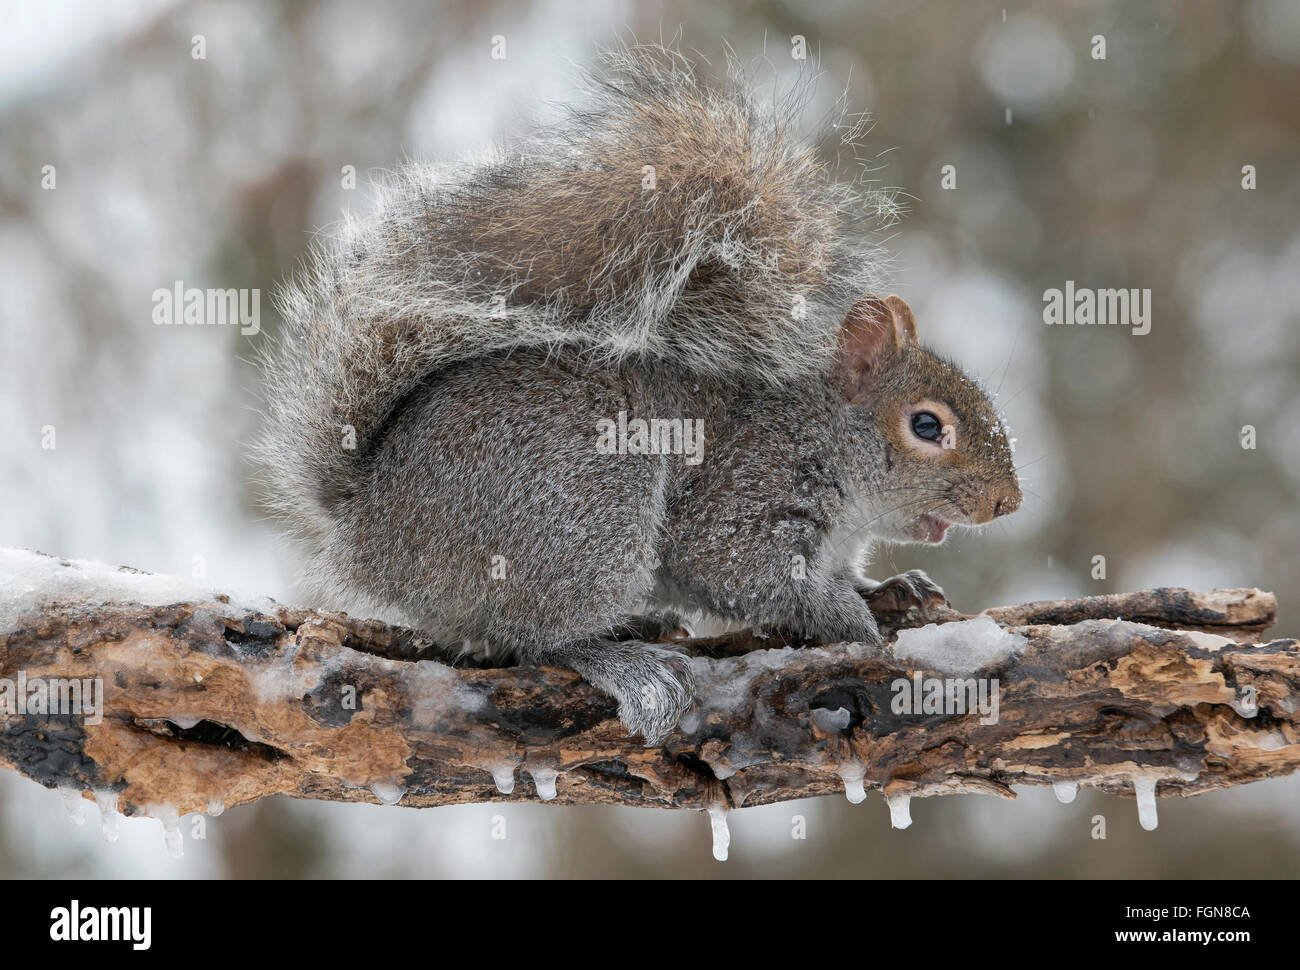 Eastern Gray Squirrel (Sciurus carolinensis) looking for food after snow storm, Michigan USA - Stock Image